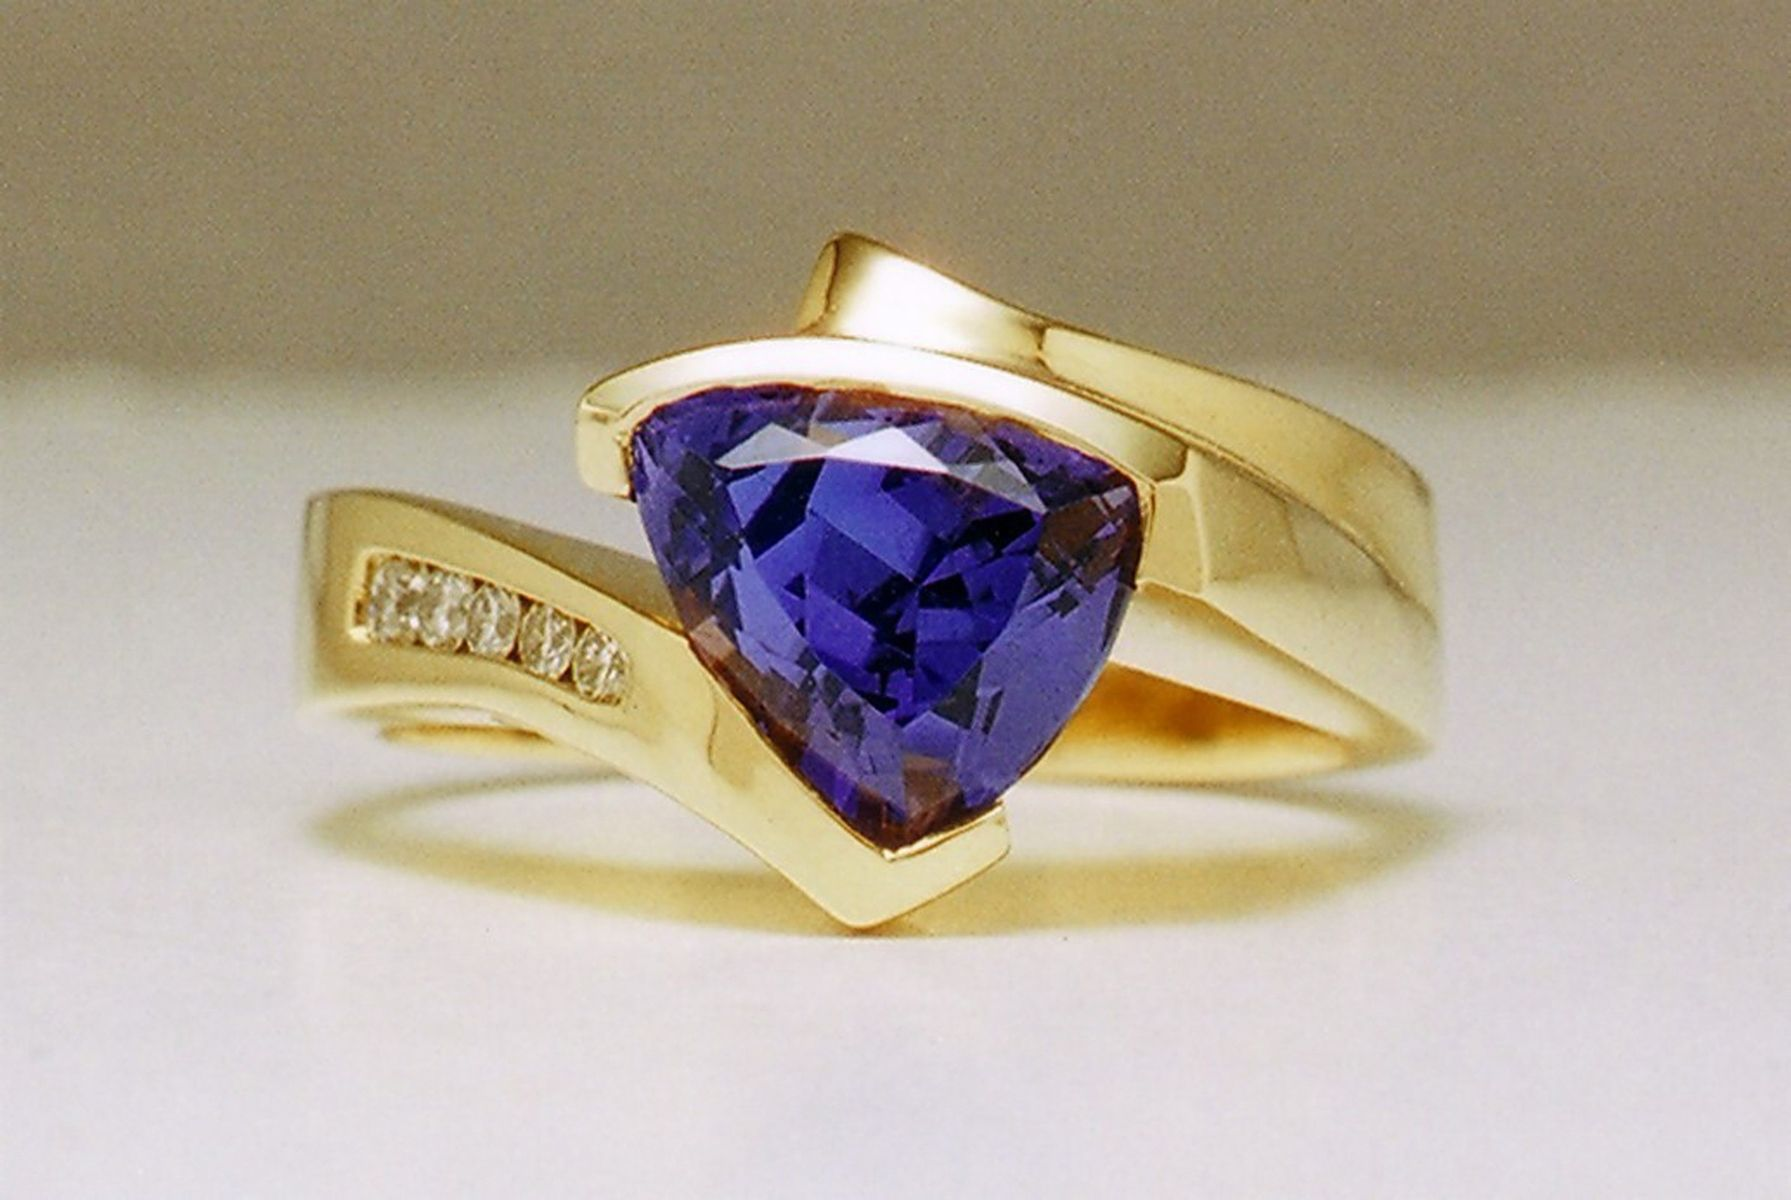 wedding rose promise diamond band vintage rings engagement natural oval solid cut gold deco fullxfull ring il tanzanite propose bands halo